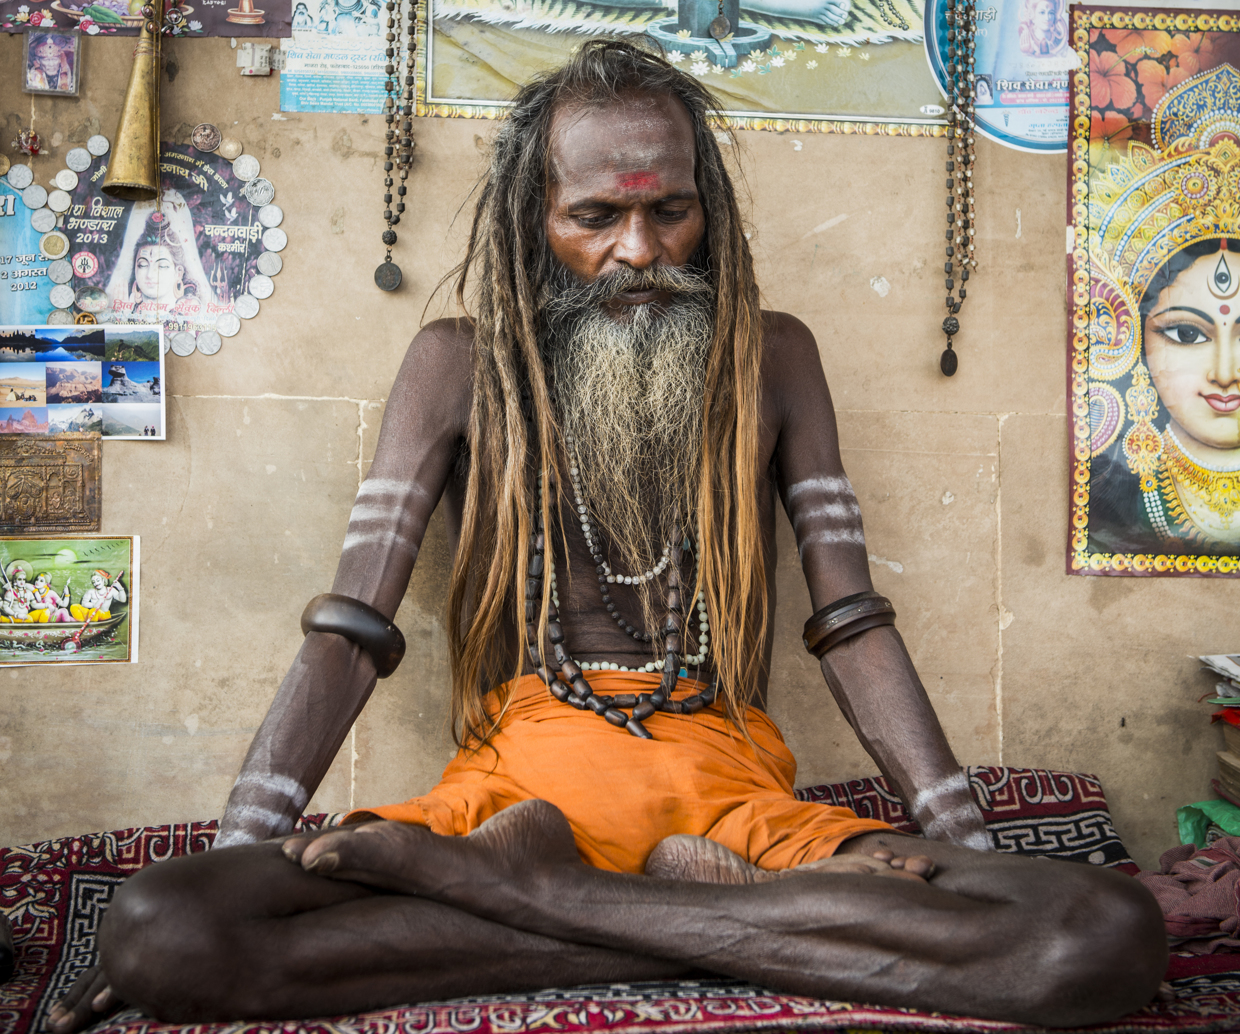 A man meditating by one of the many ghats in Varanasi, India.